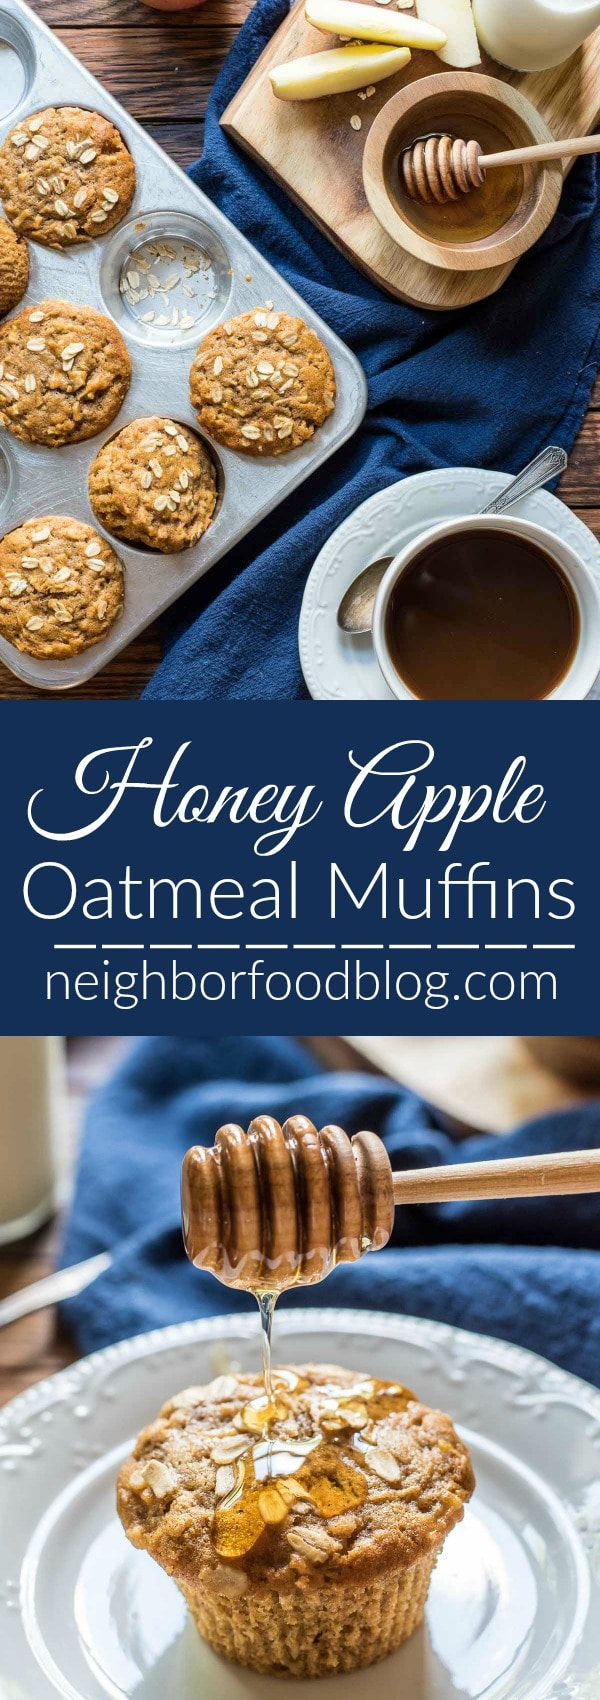 double image with text label for apple cinnamon muffins